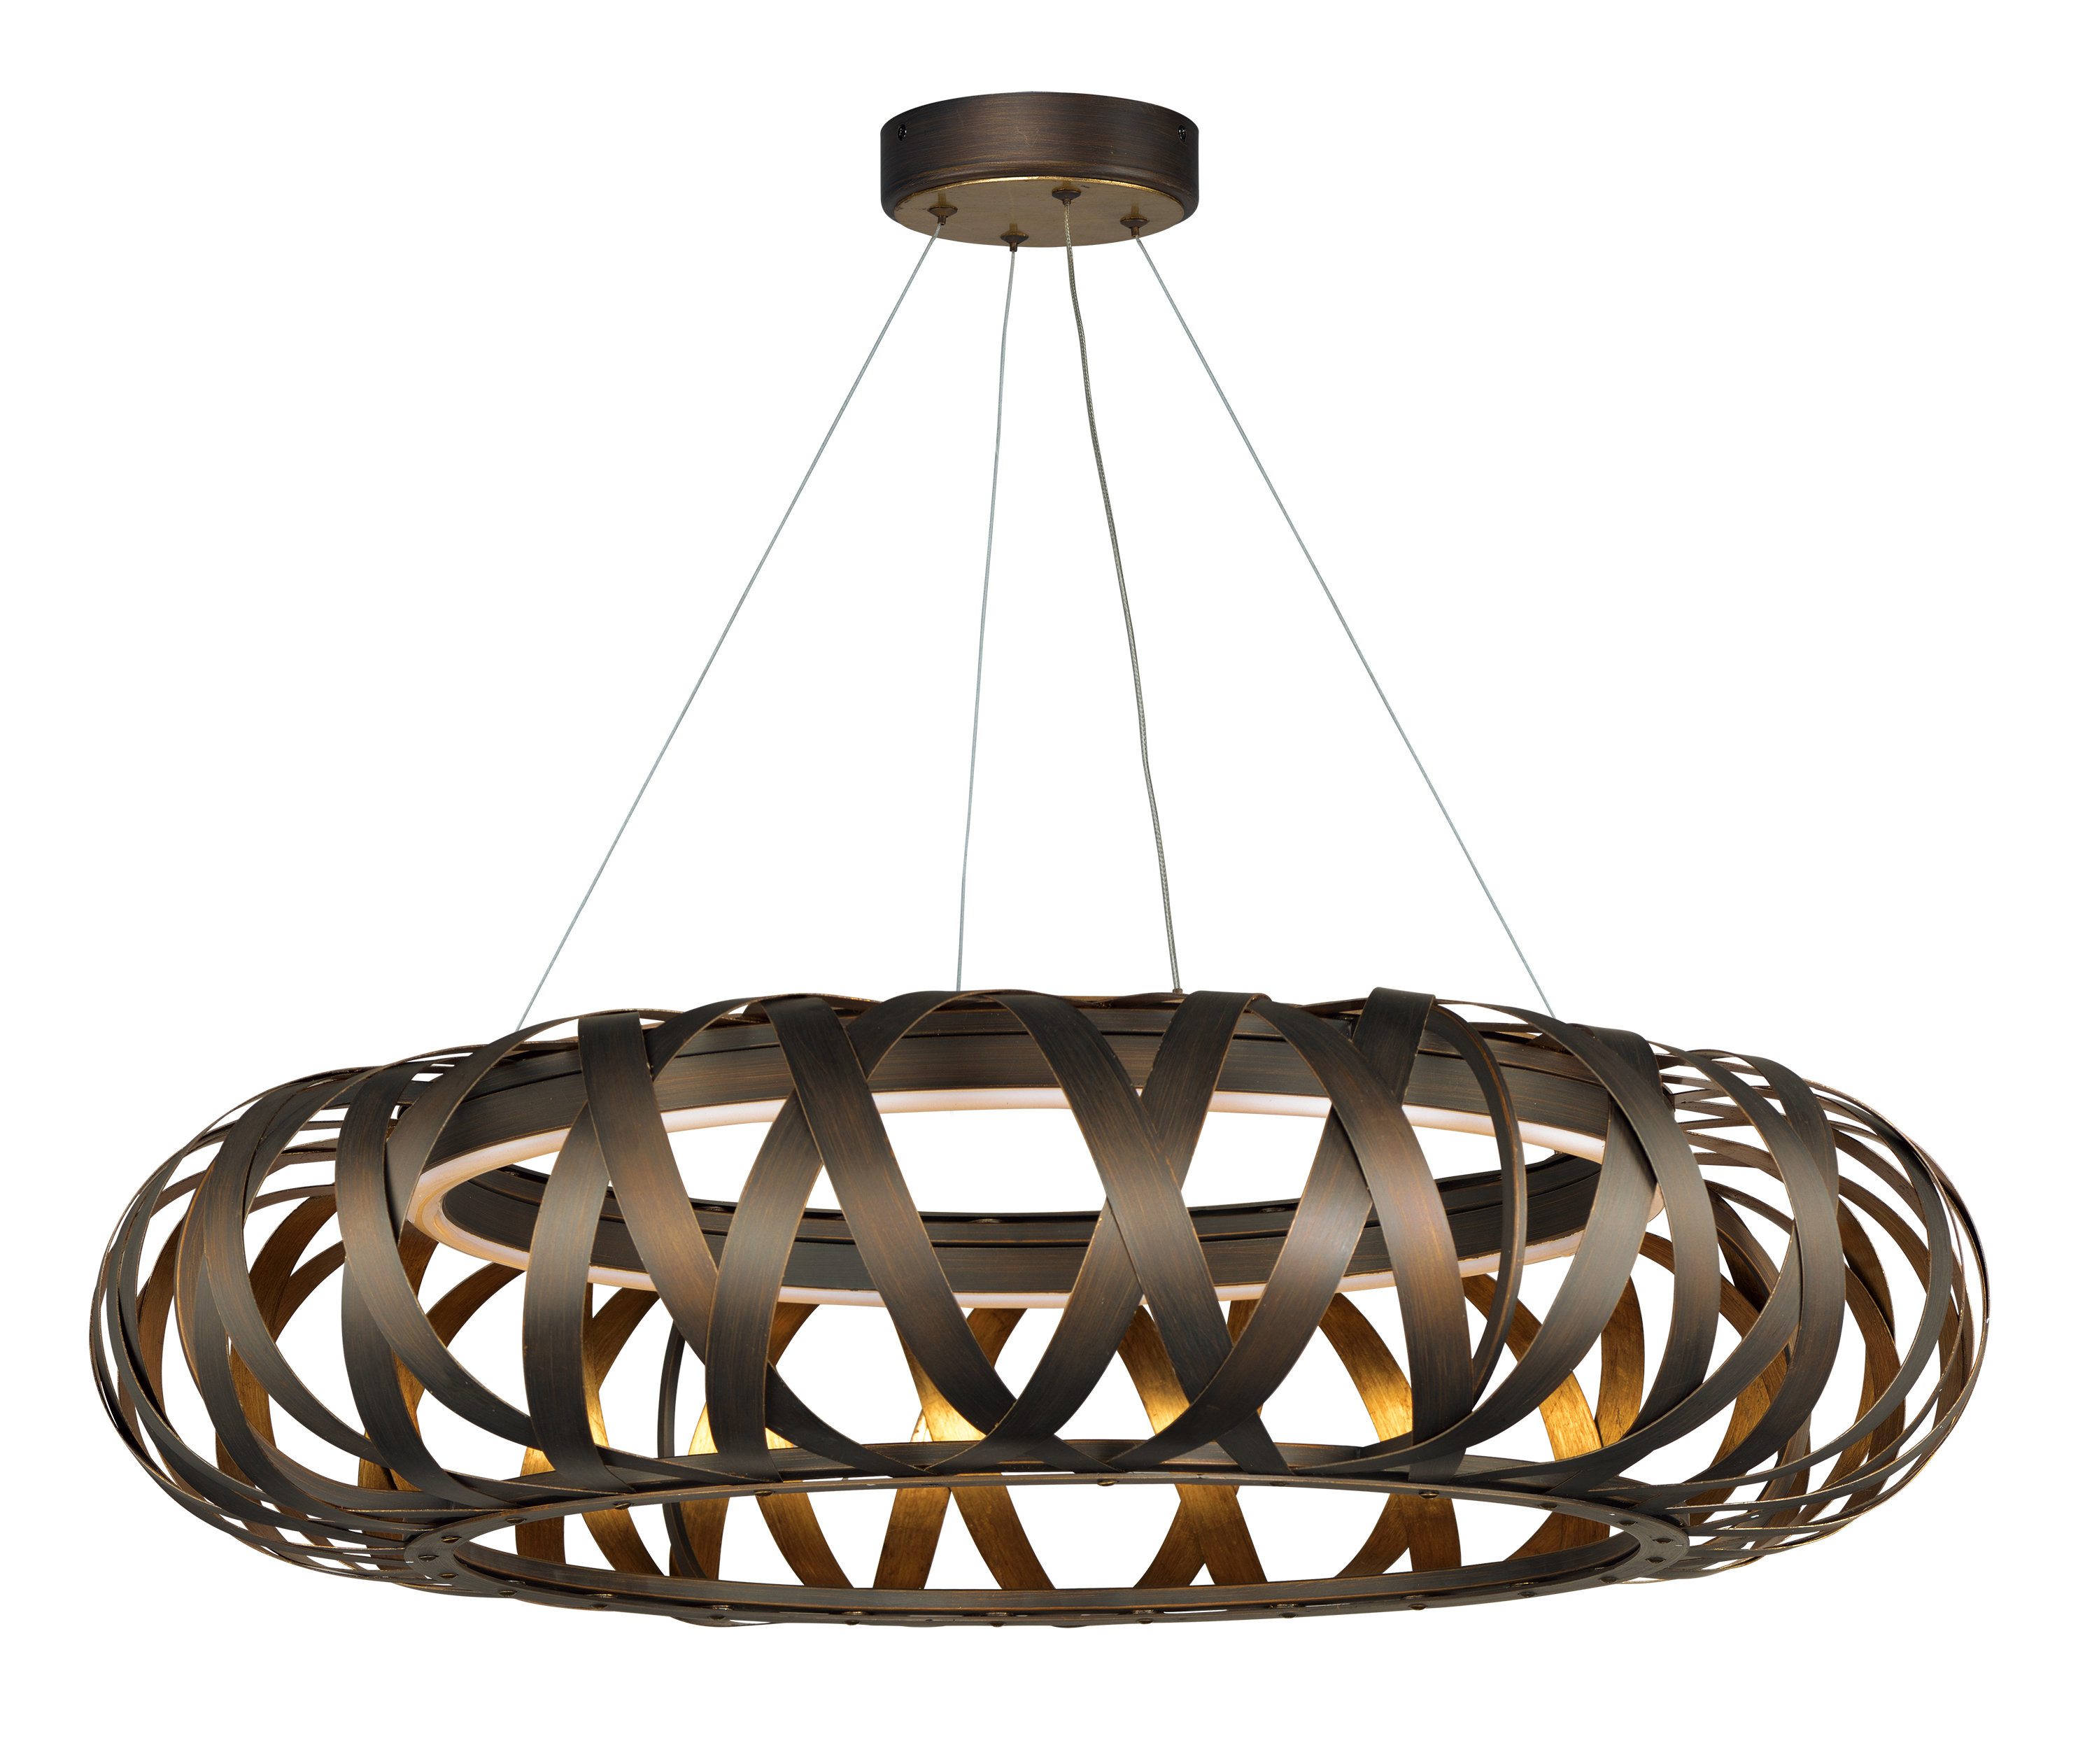 Deskins Entry 1-Light Led Geometric Pendant throughout Melora 1-Light Single Geometric Pendants (Image 9 of 30)